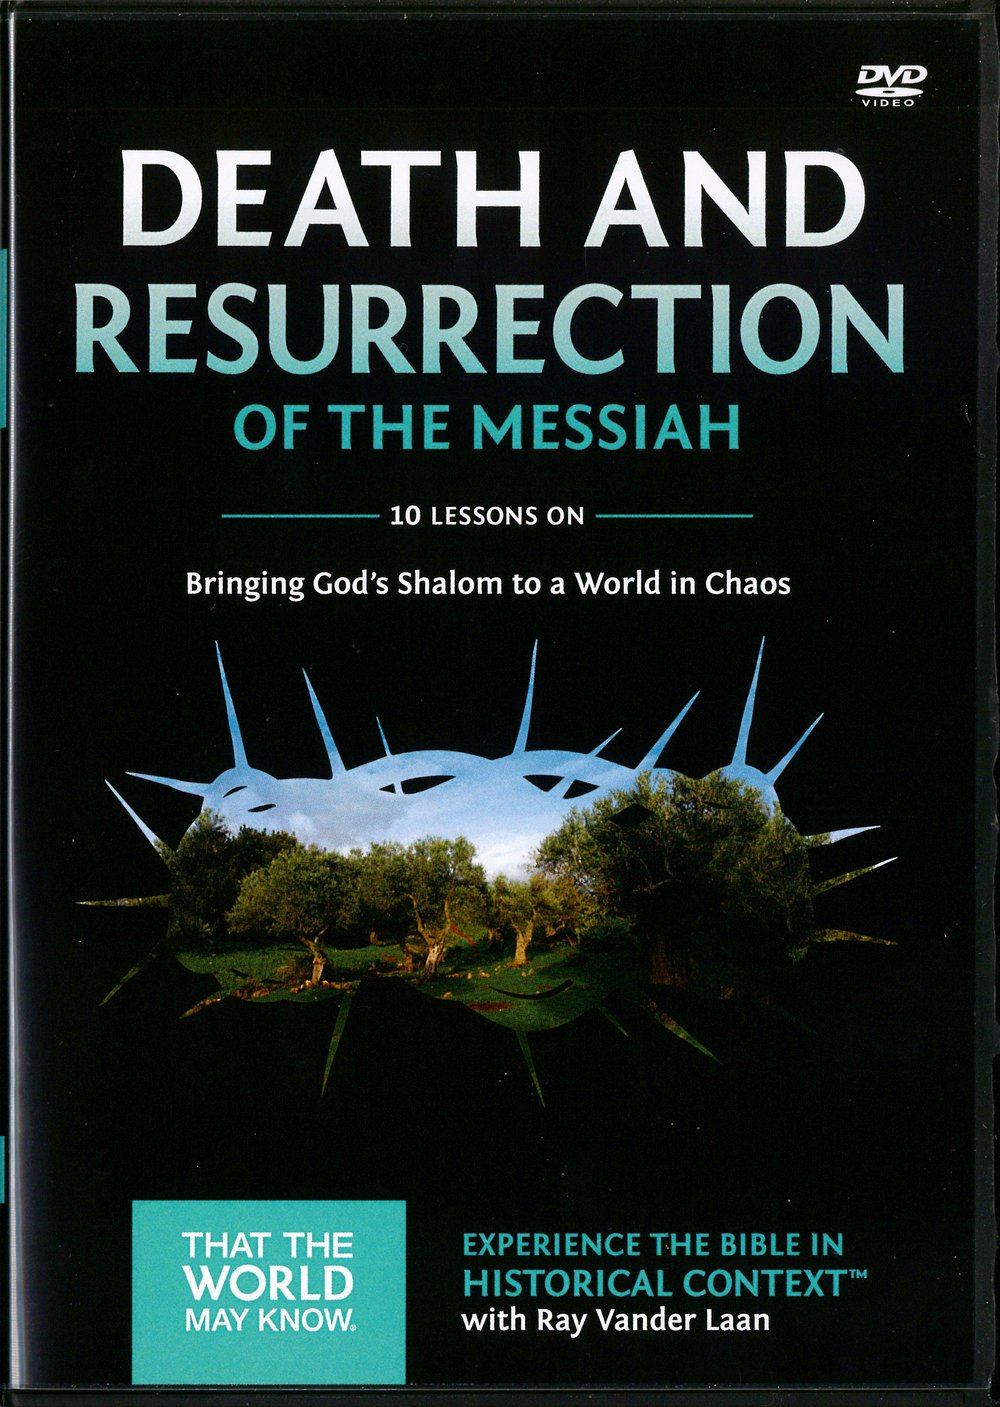 Death and Resurrection of the Messiah.jpg